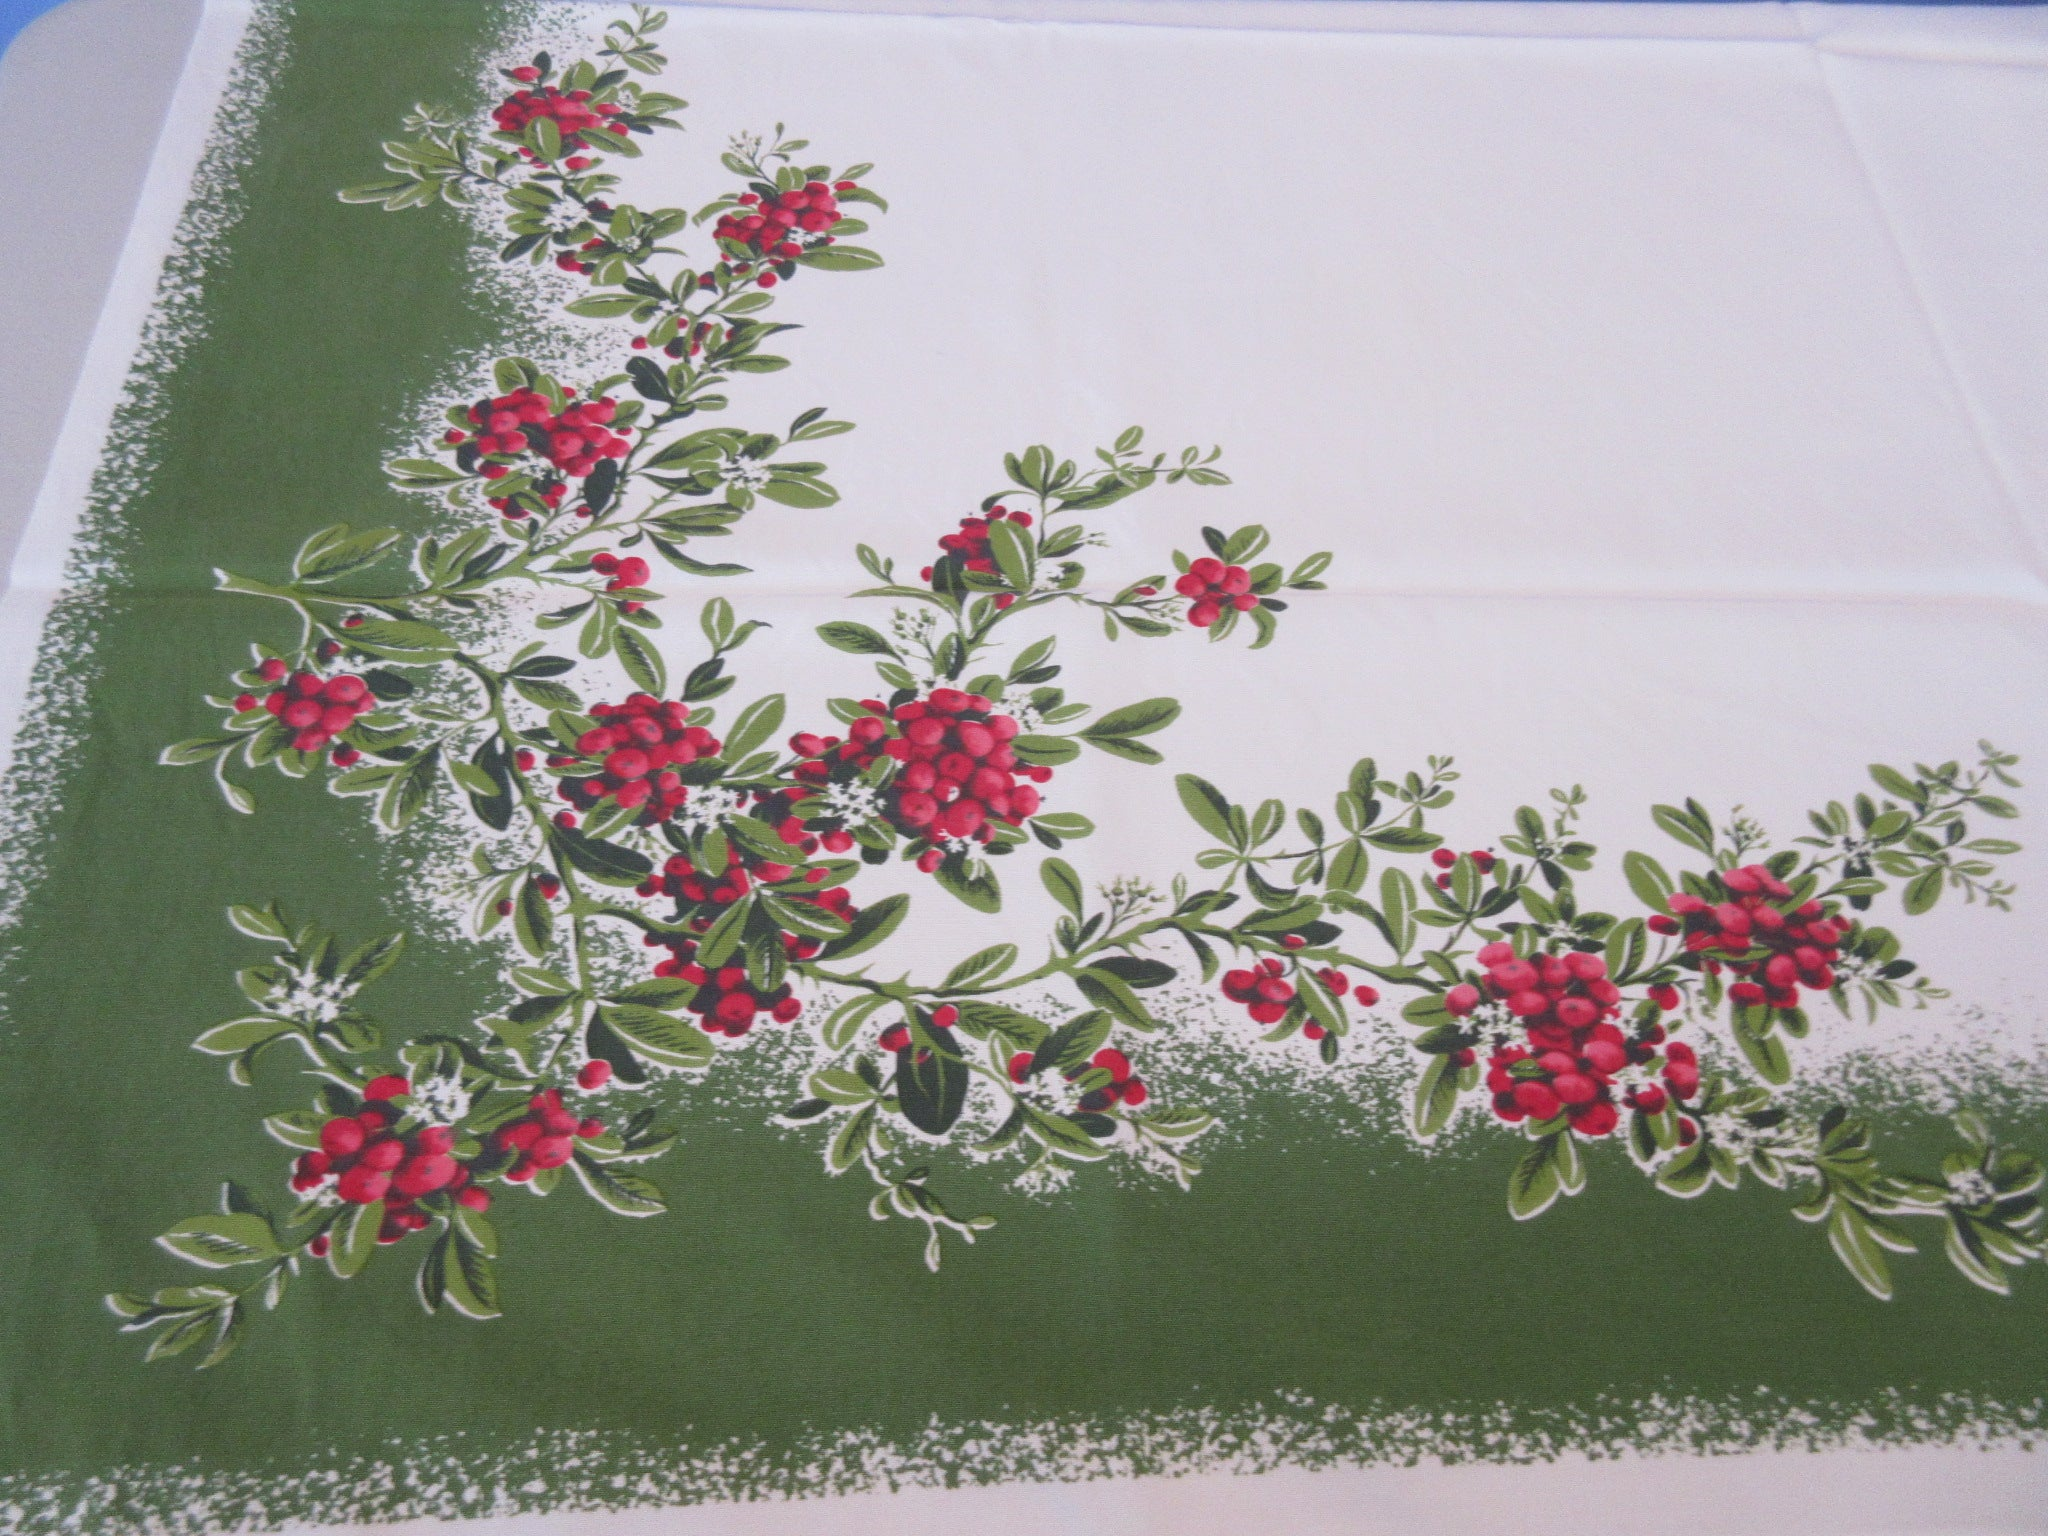 CHP Holly Firethorn Christmas on Green Novelty Vintage Printed Tablecloth (52 X 44)